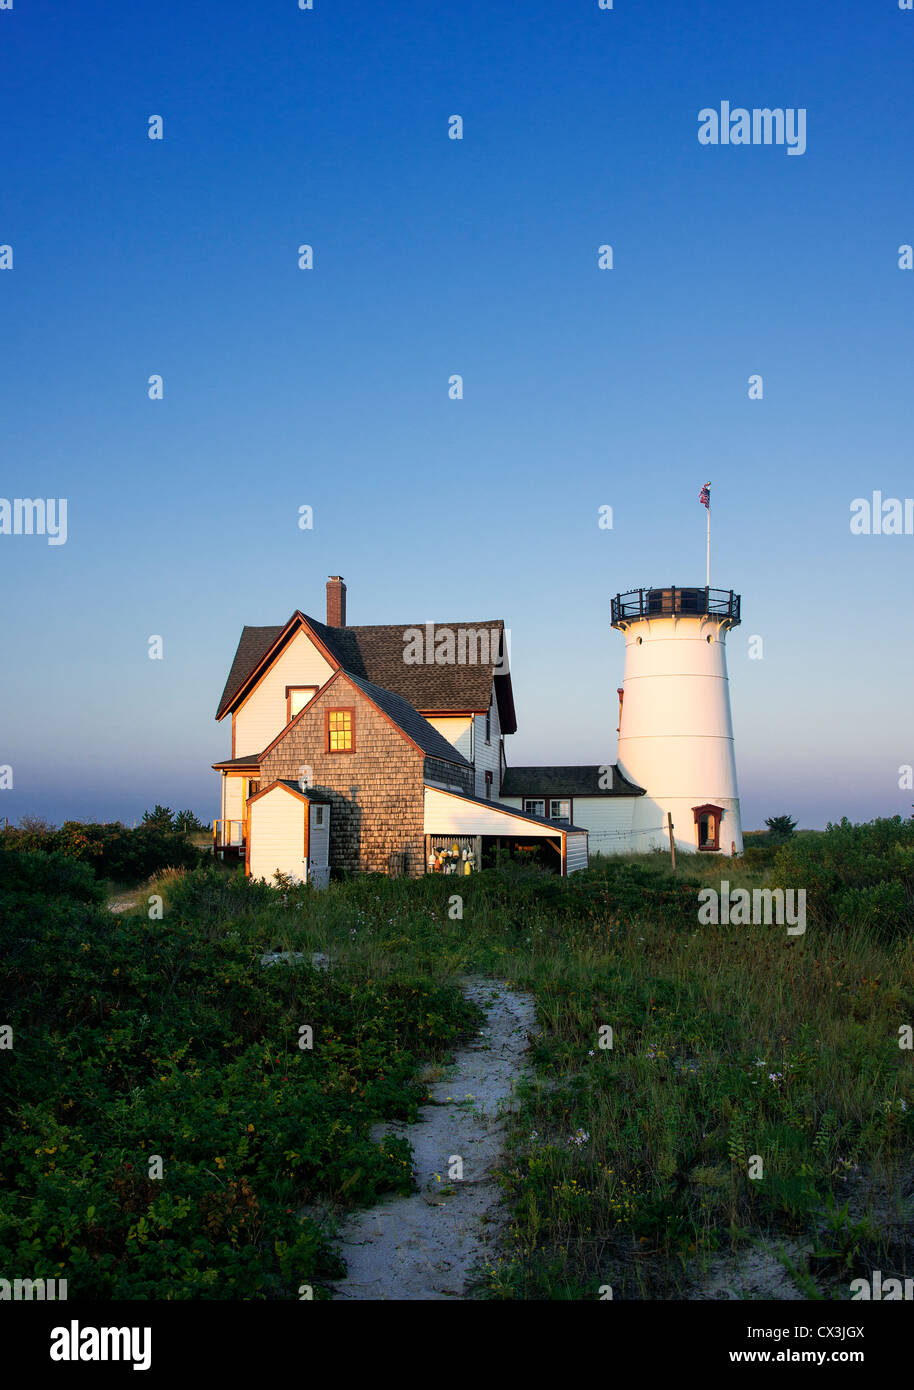 Stage Harbor Lighthouse, Chatham, Cape Cod, Massachusetts, USA. Also known as Harding's Beach Lighthouse. 1880 - Stock Image